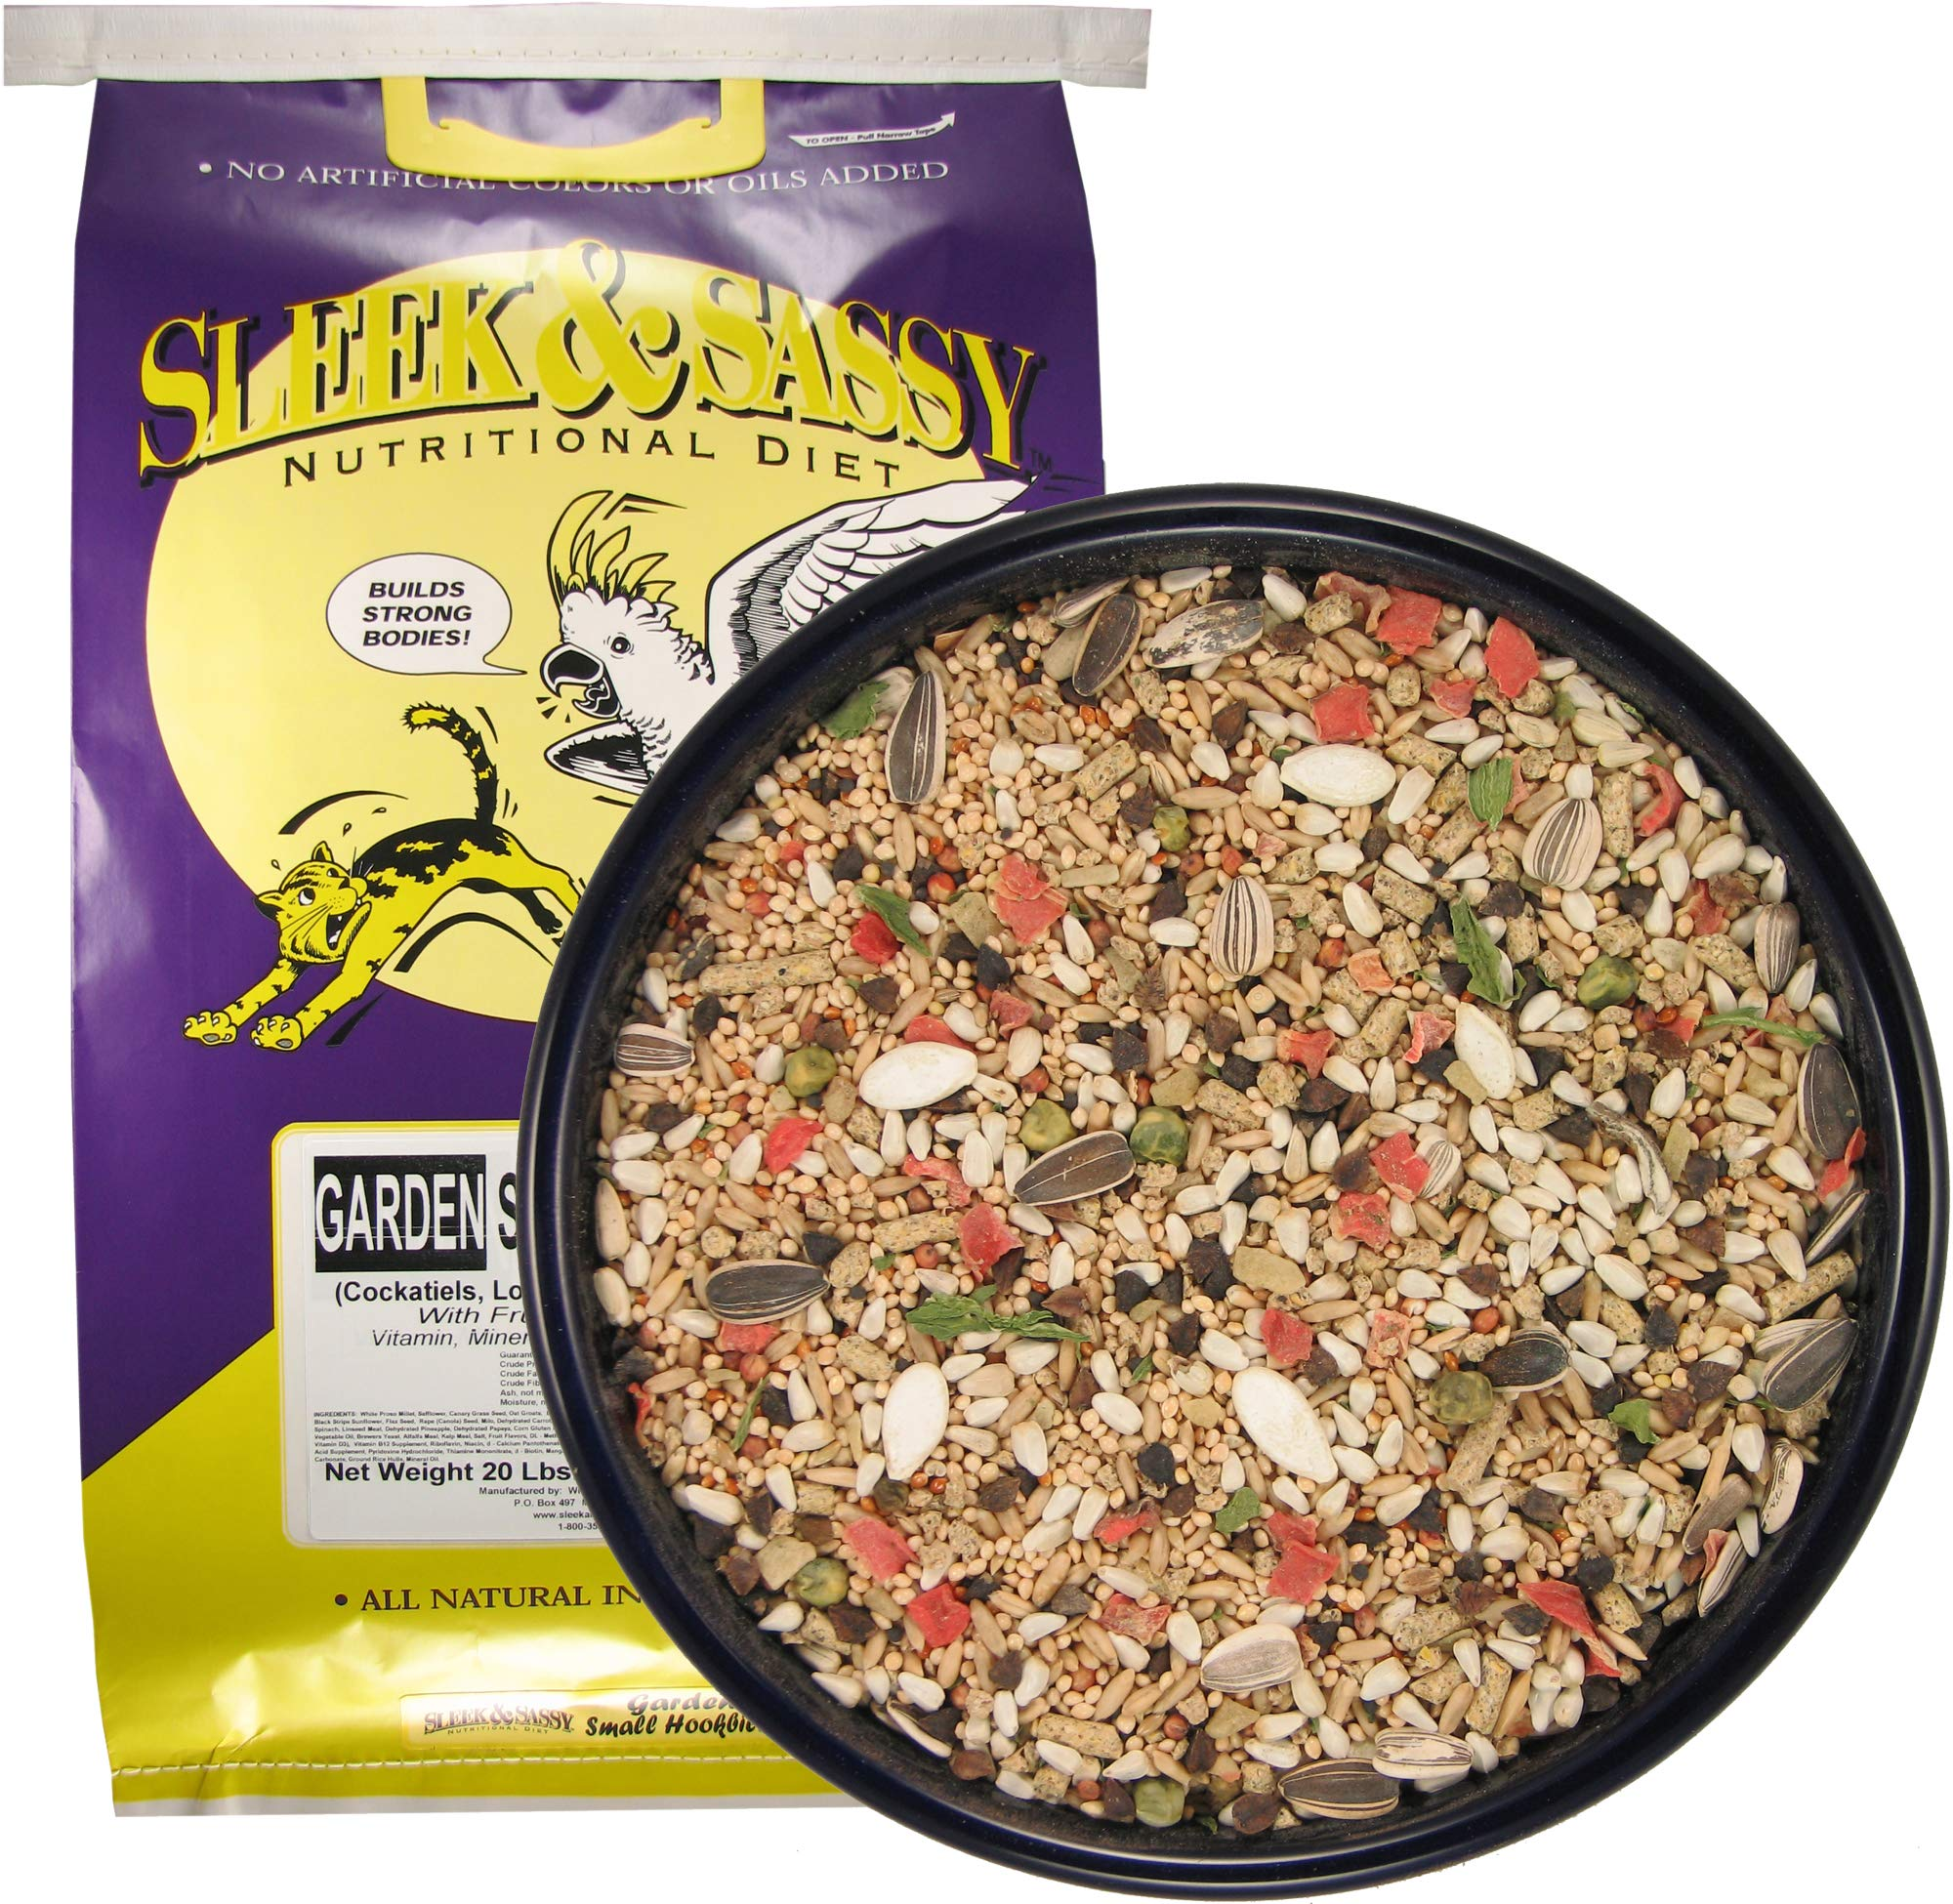 Sleek & Sassy Garden Small Hookbill Bird Food for Cockatiels, Lovebirds, Quaker Parrots & Small Conures (20 lbs.) by Sleek & Sassy